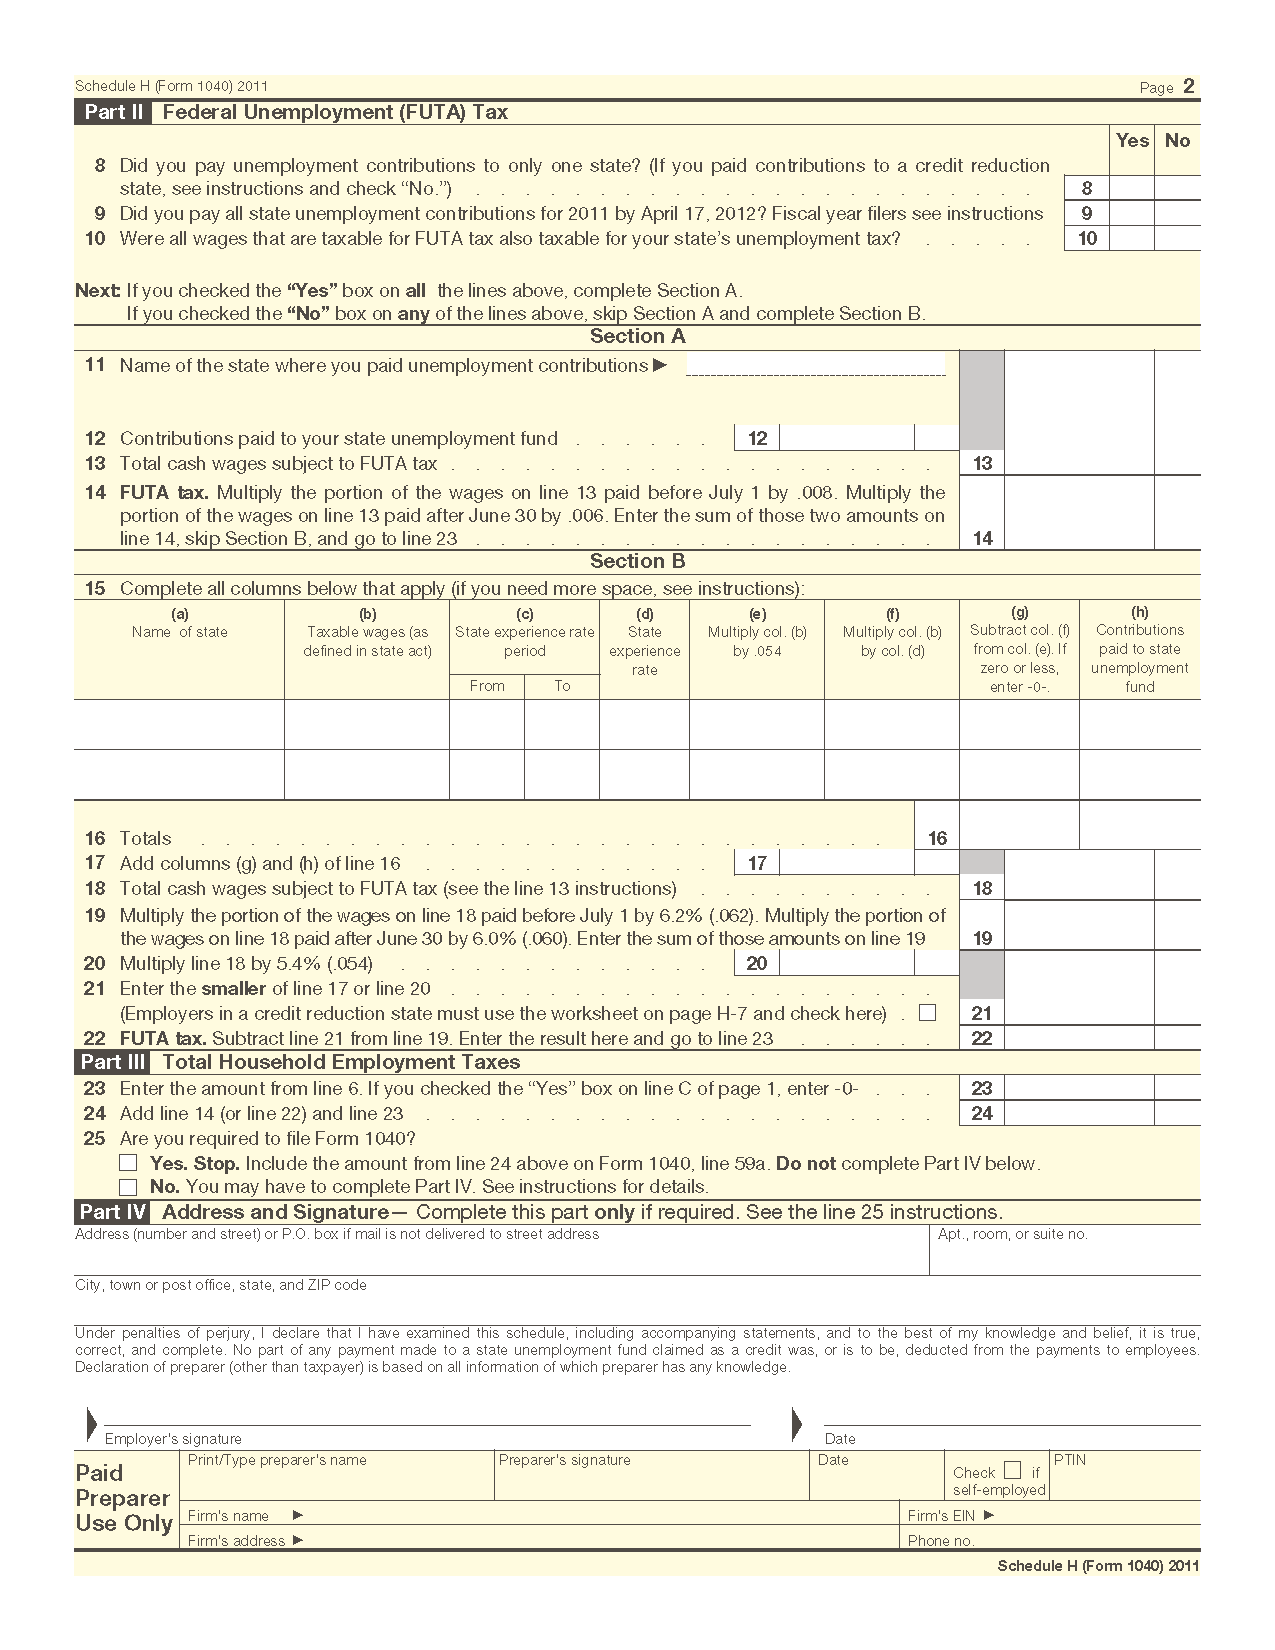 Form 1040 Schedule H Household Employment Taxes